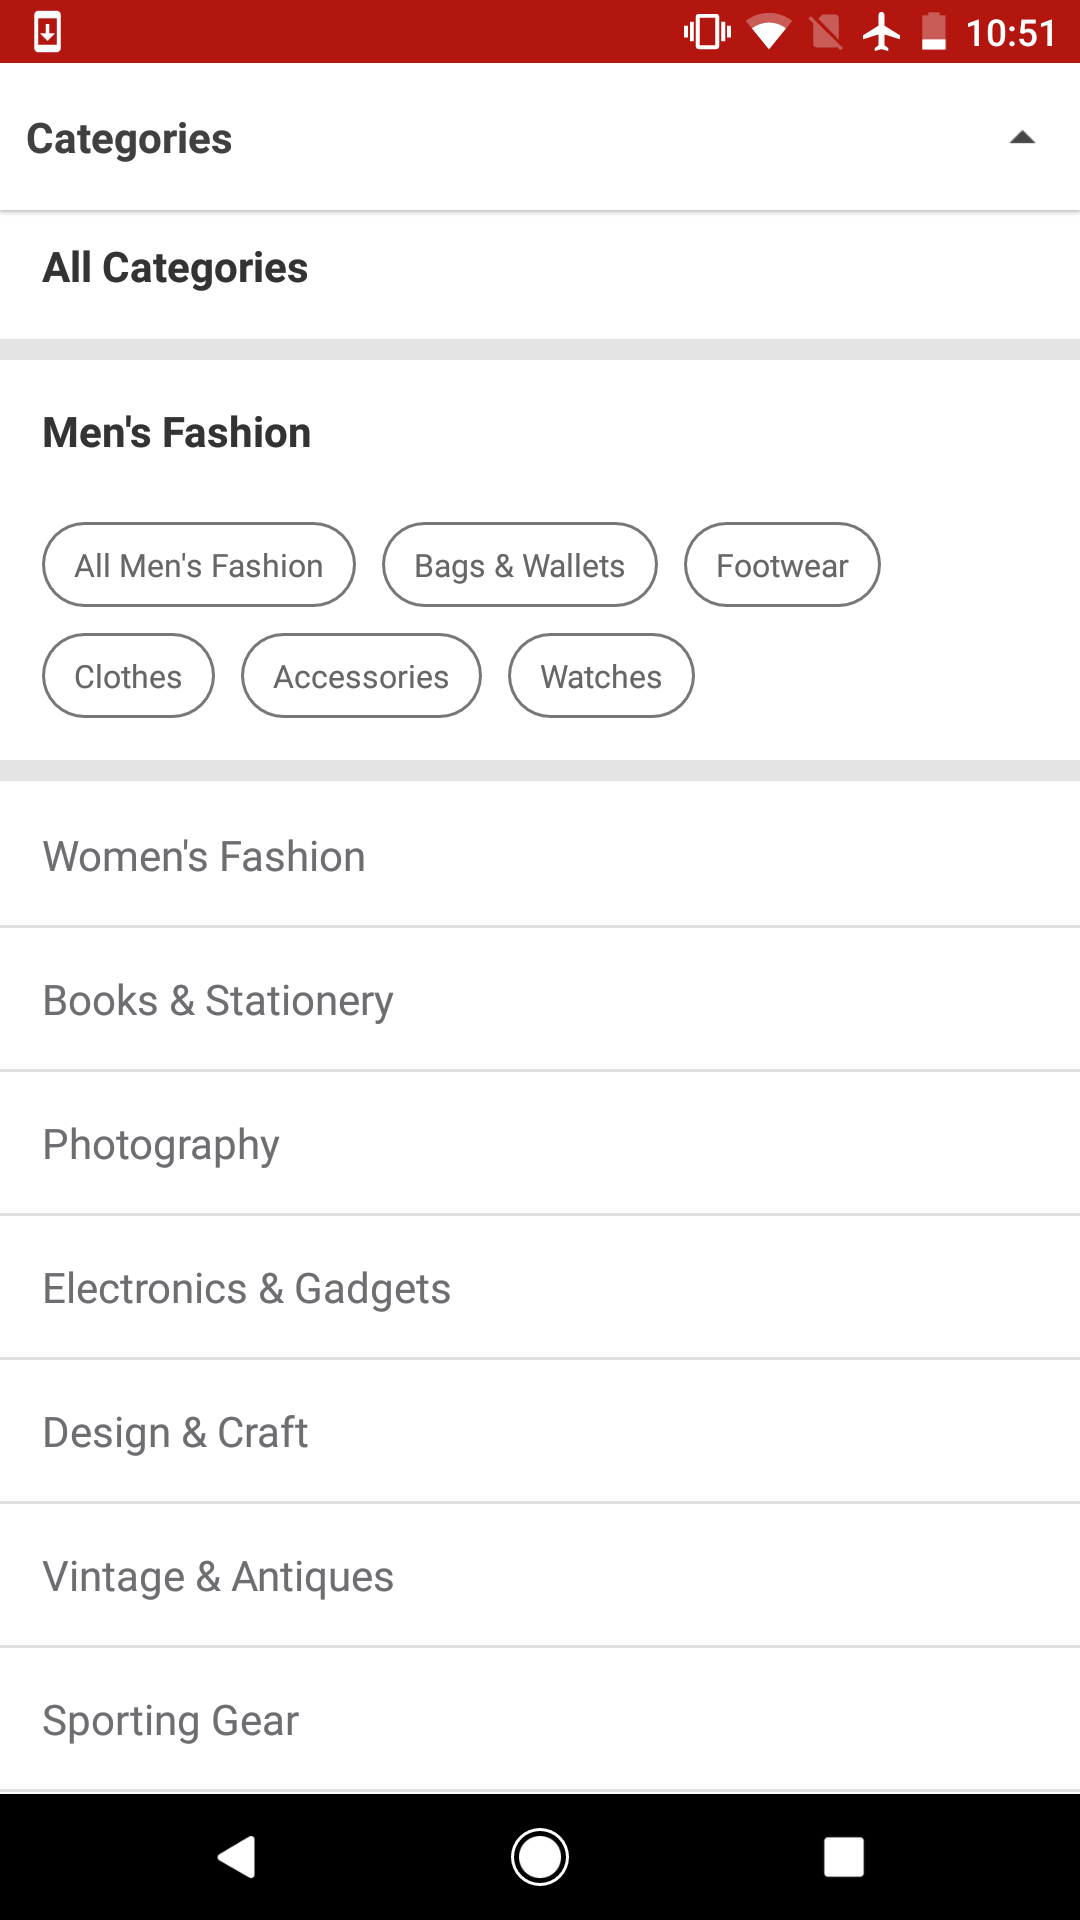 Categories Filter on Carousell for Android